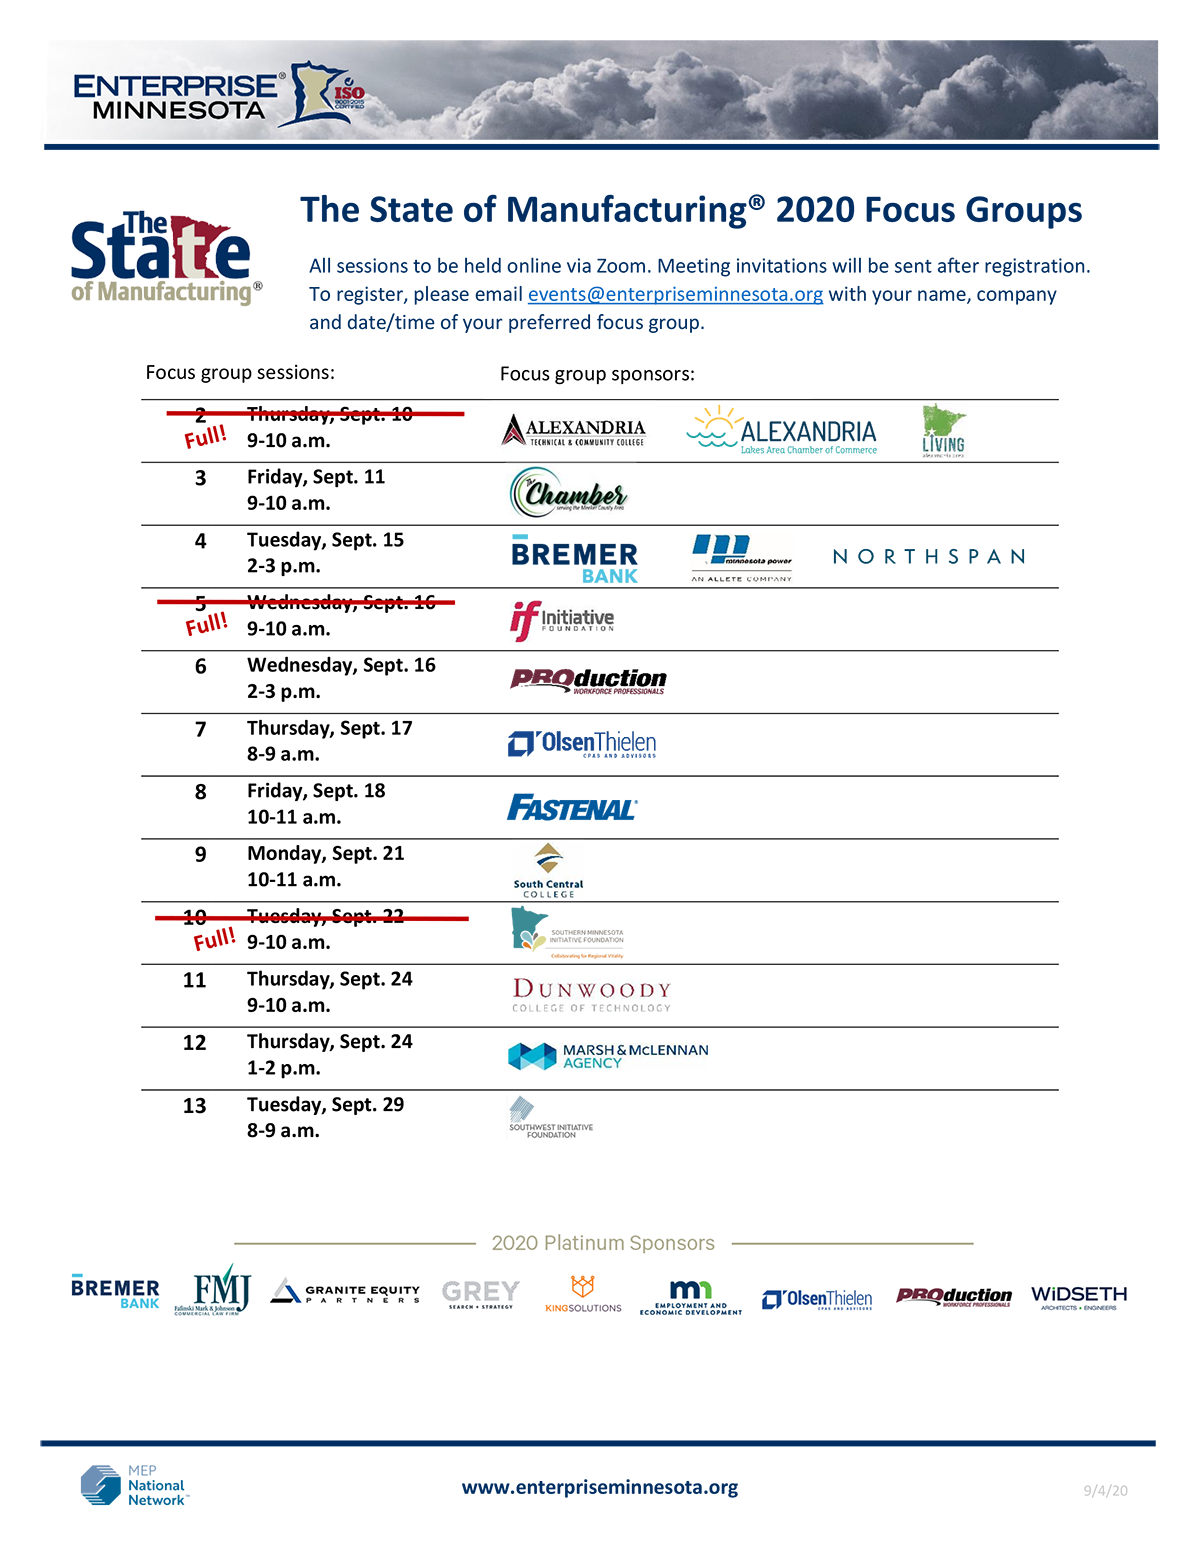 The State of Manufacturing 2020 Focus Groups Fall (004)